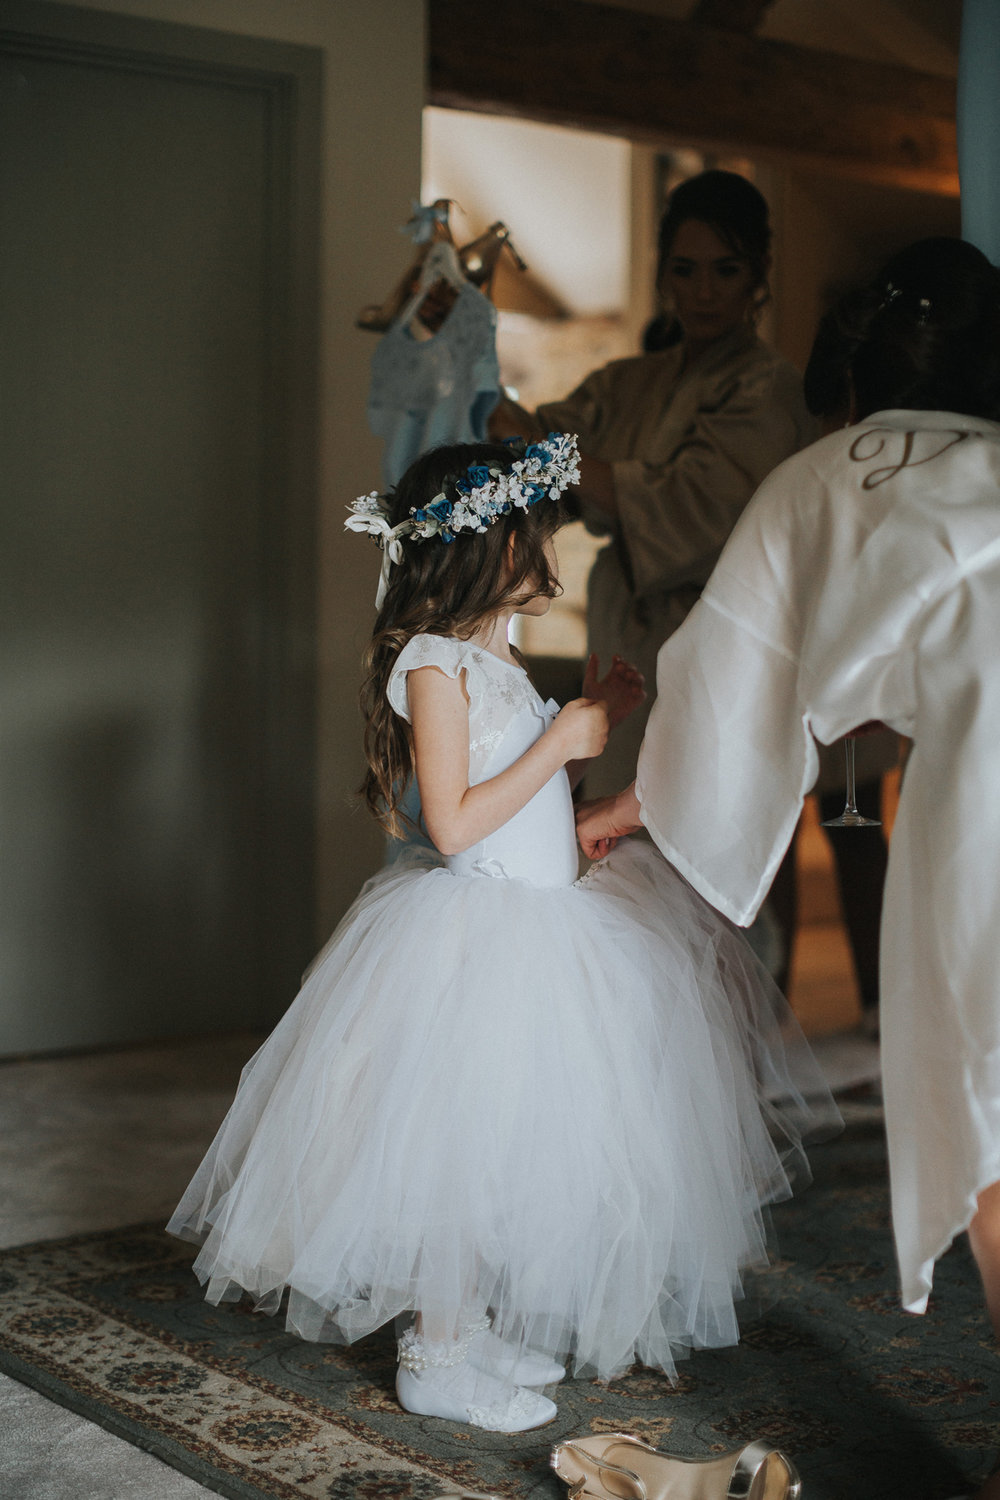 Upwaltham Barns Wedding021.jpg